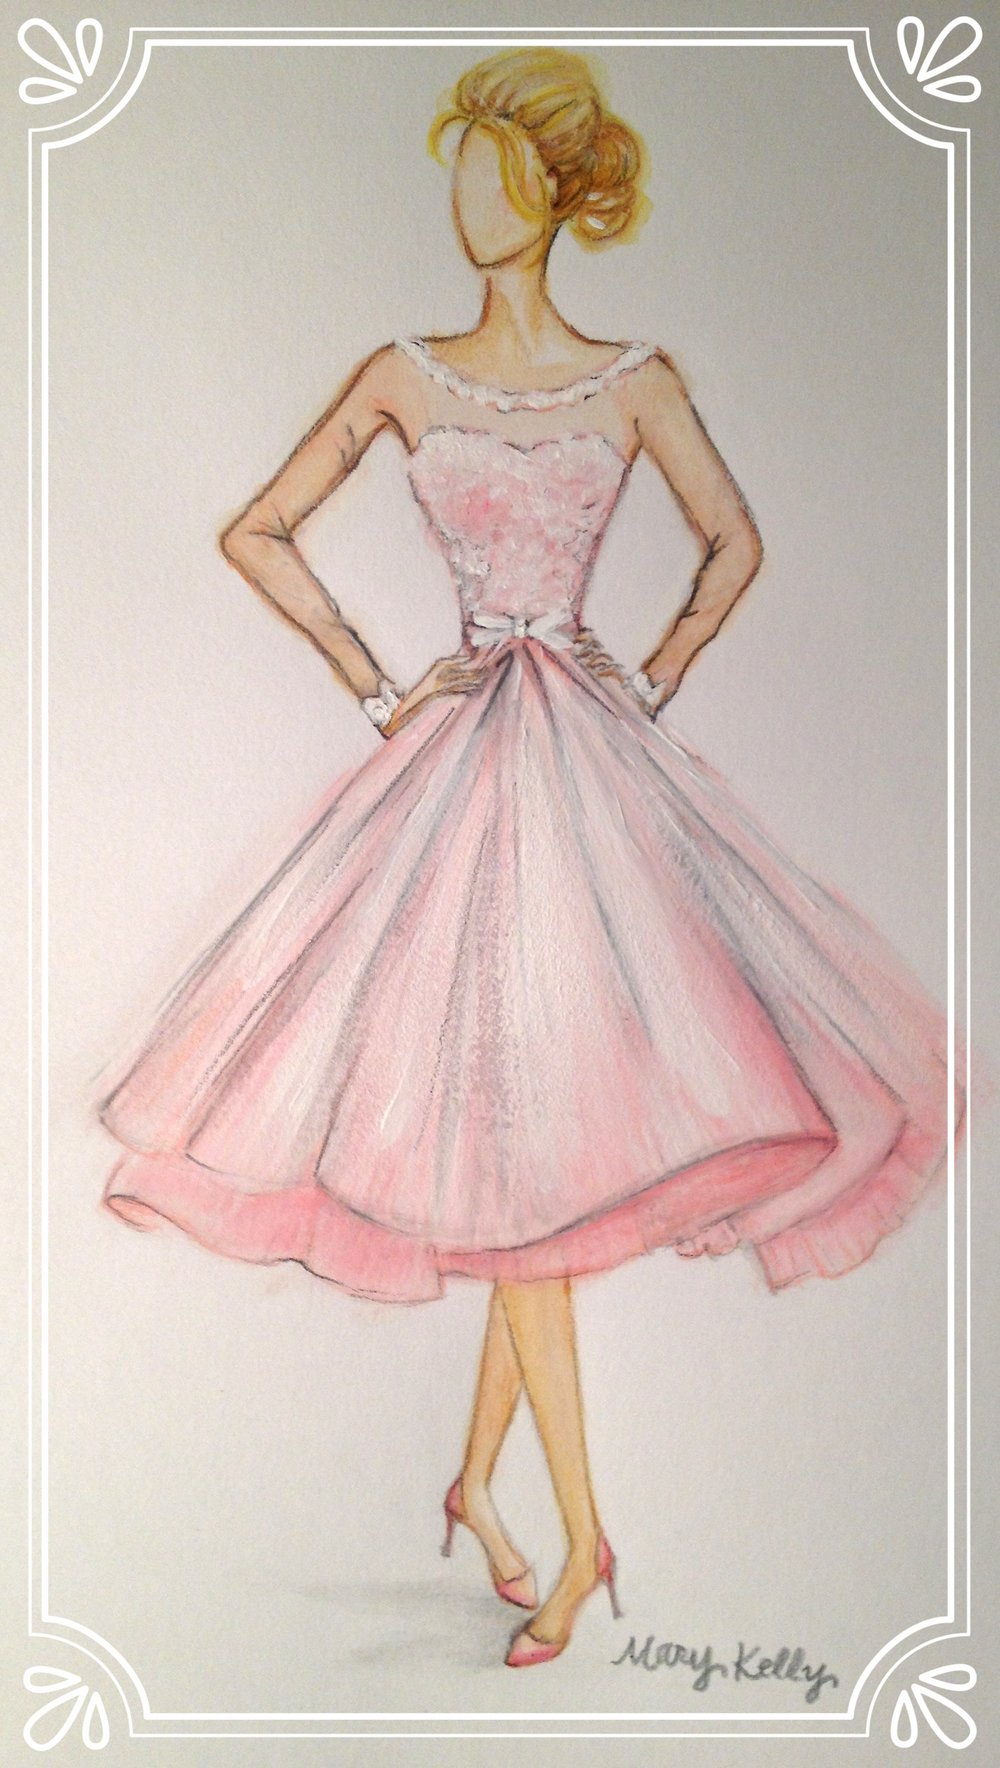 short pink dress, mary kelly designs © 2018